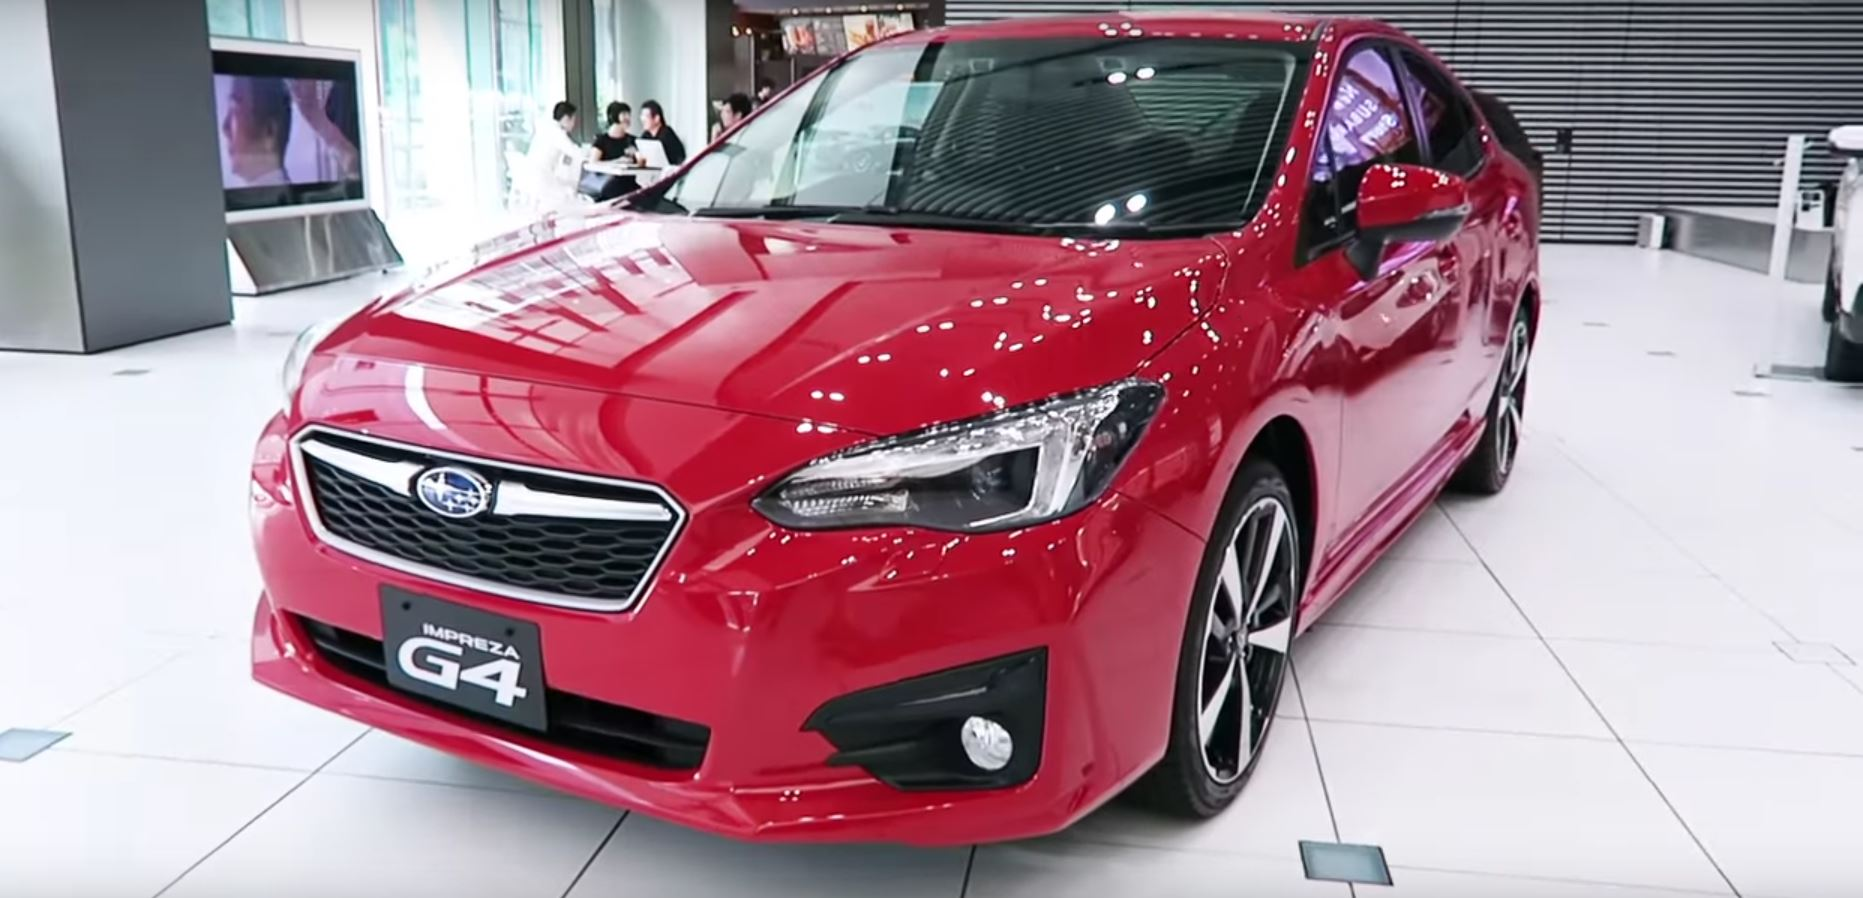 2017 Subaru Impreza Hatch, Sedan and Chassis Get Detailed ...